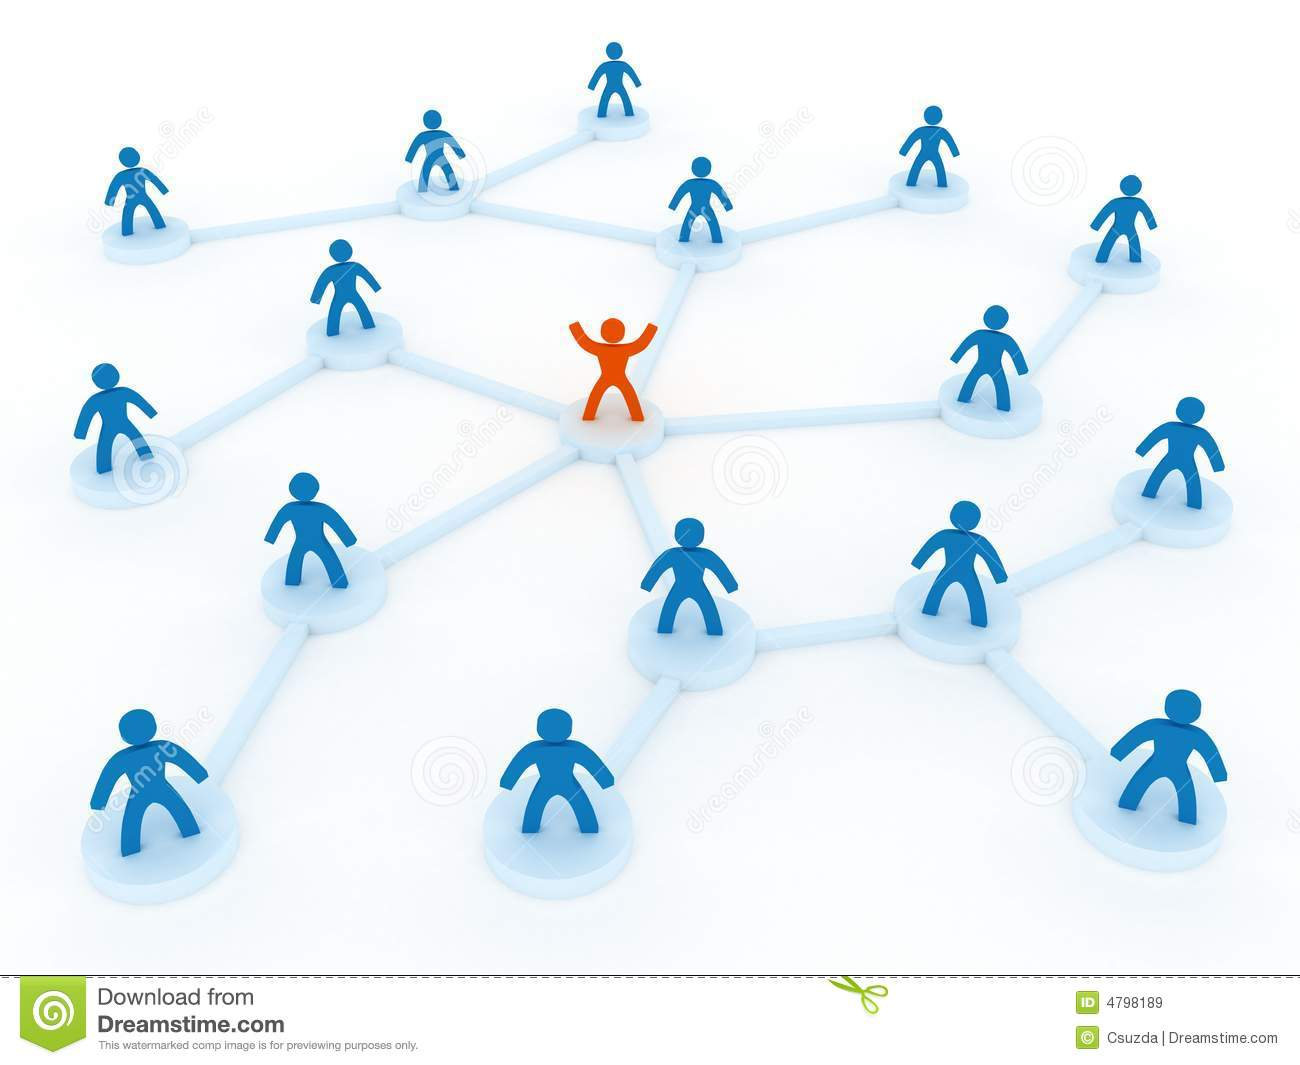 Human Network Royalty Free Stock Images - Image: 4798189